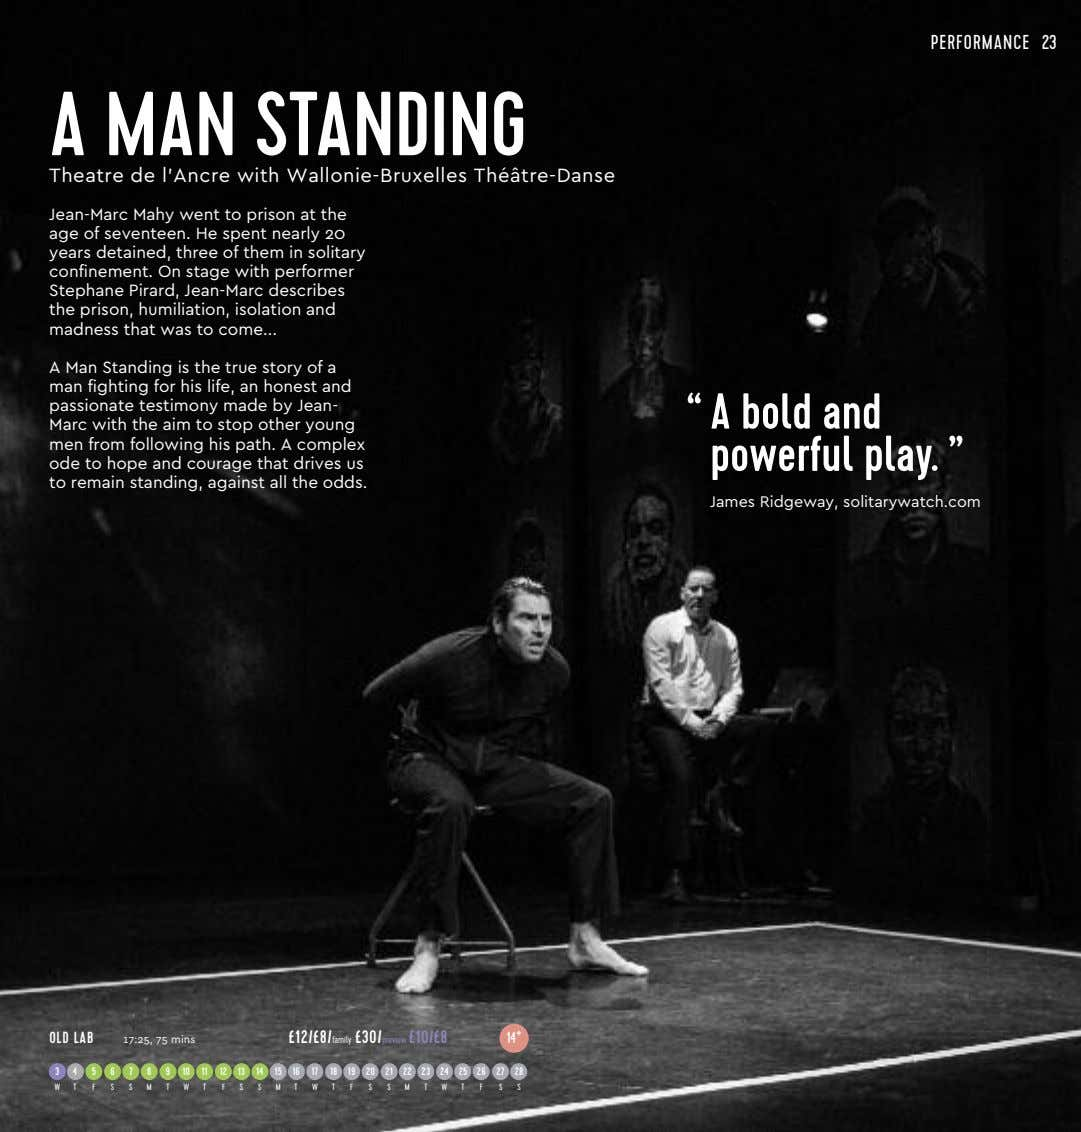 PERFORMANCE 23 A MAN STANDING Theatre de l'Ancre with Wallonie-Bruxelles Theatre-Danse ´ˆ Jean-Marc Mahy went